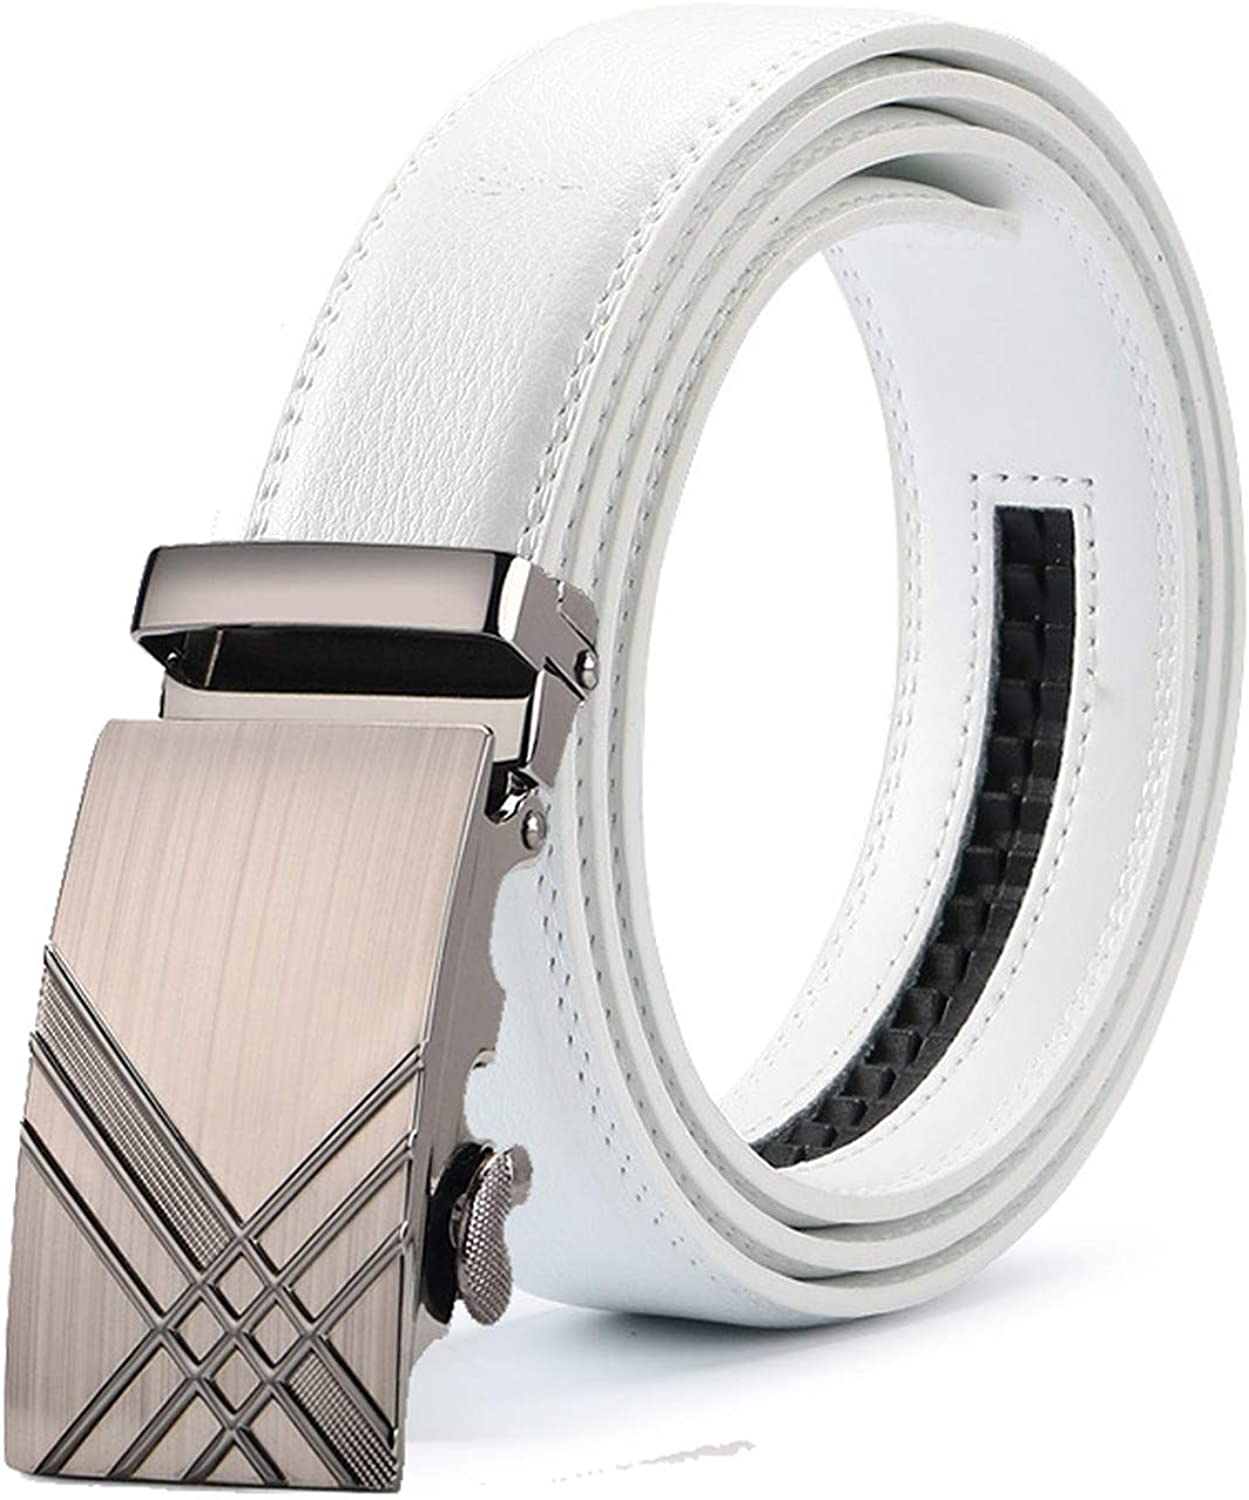 New Mens Fashion Automatic Buckle Leather Luxury Man cinturones hombre Black white Belt Alloy buckle White belt for Men,2,115cm